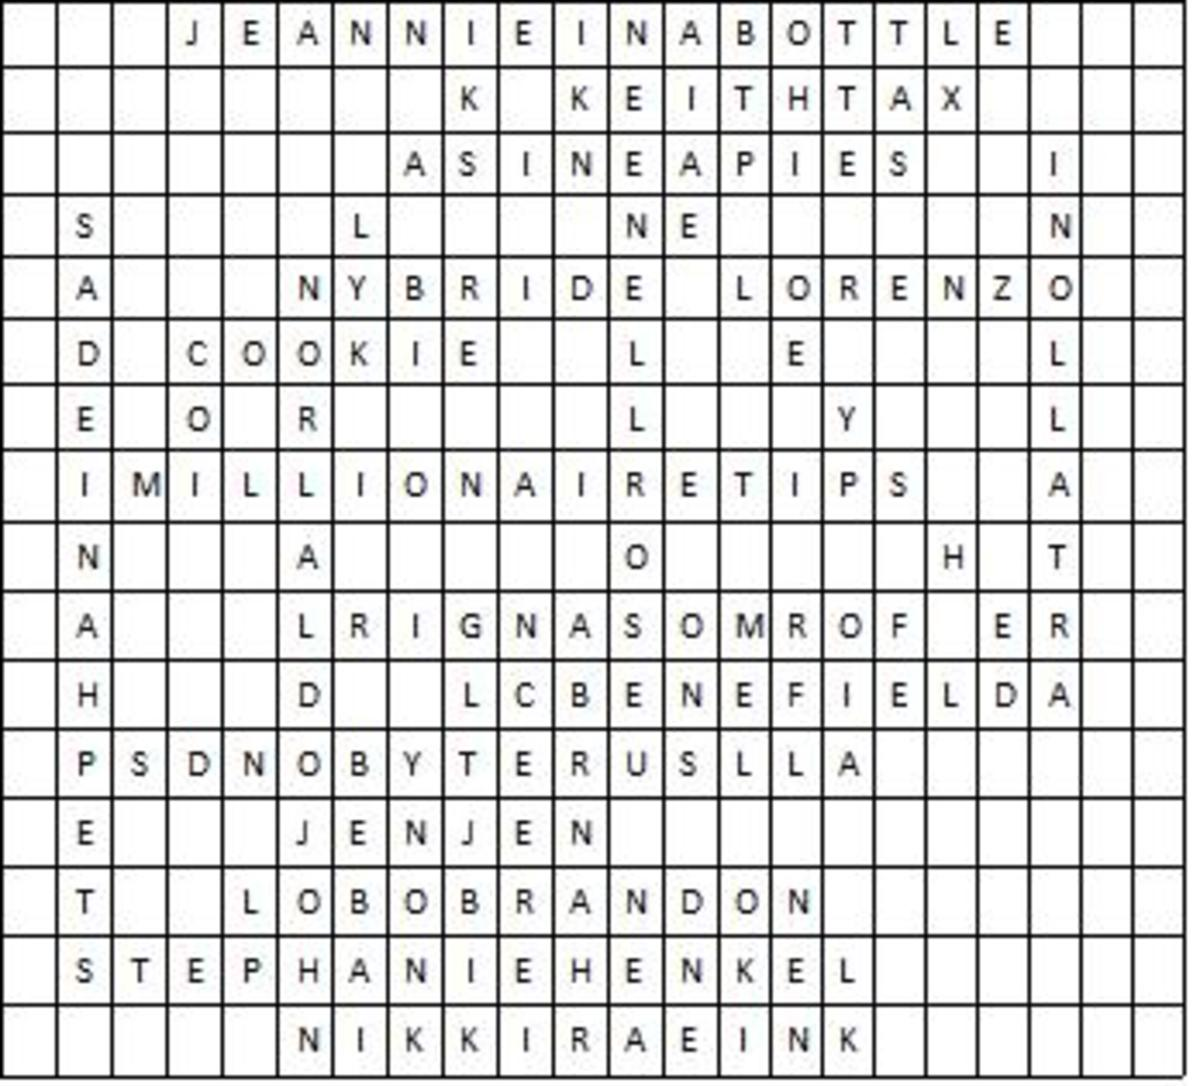 All the words have been entered into the word search puzzle grid.